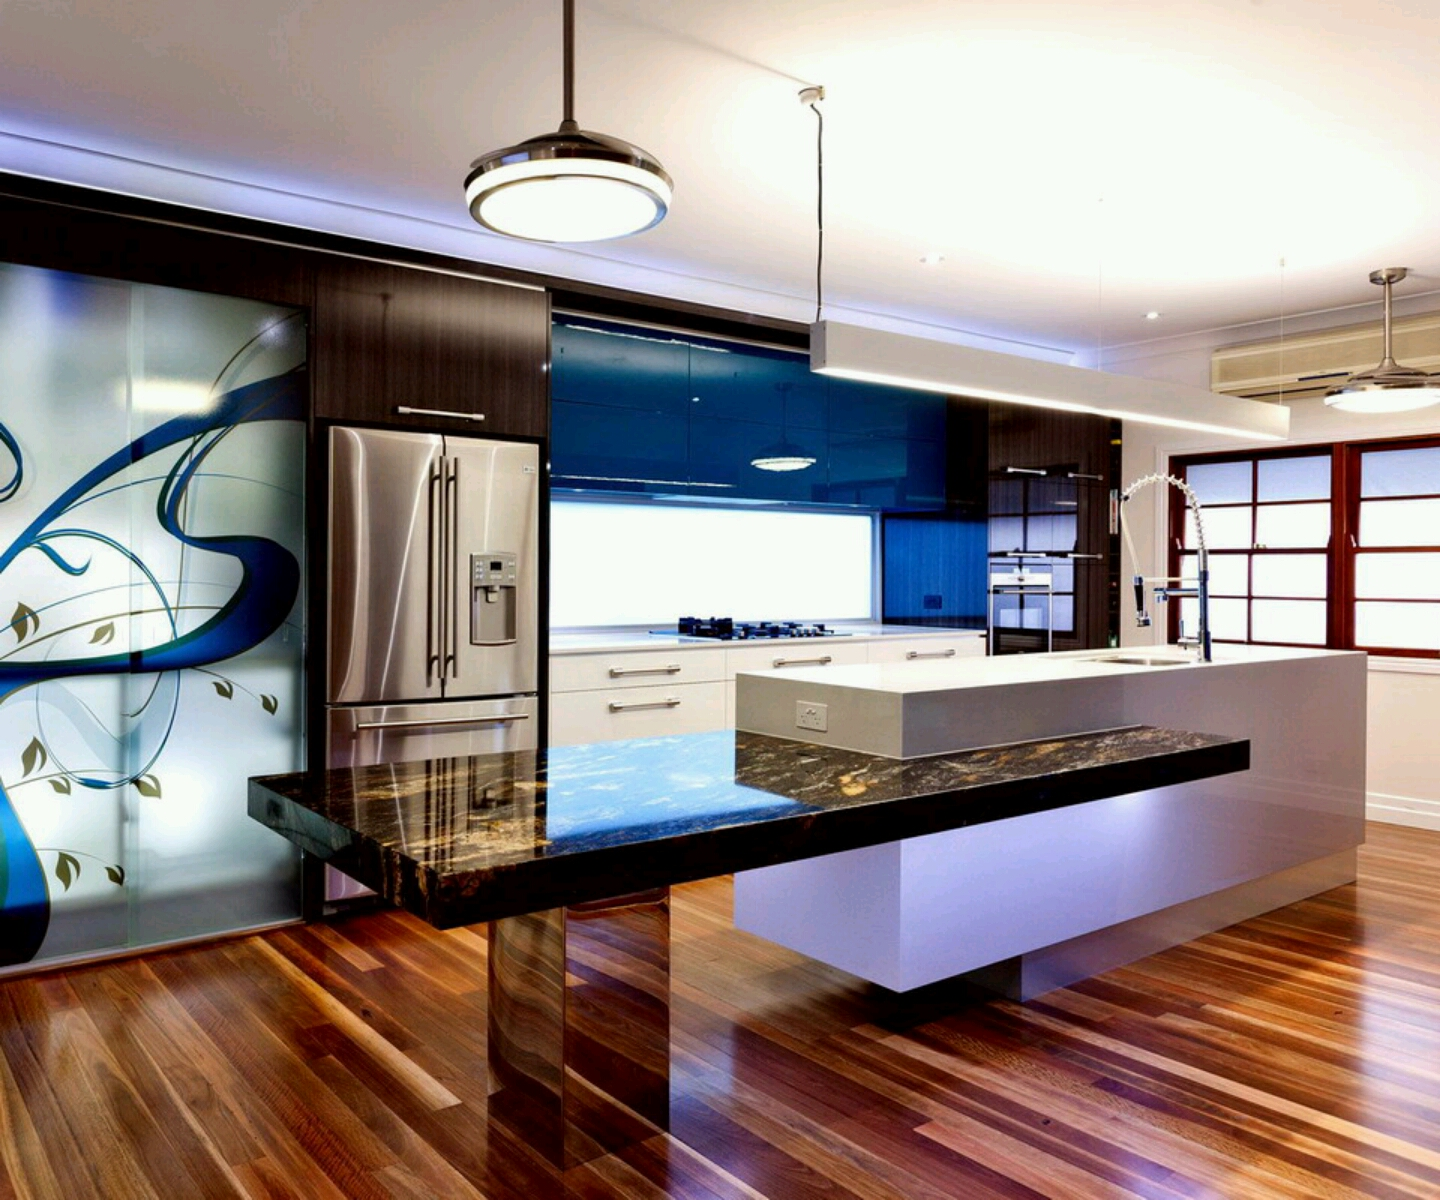 Ultra modern kitchen designs ideas - Interior design for kitchen ...